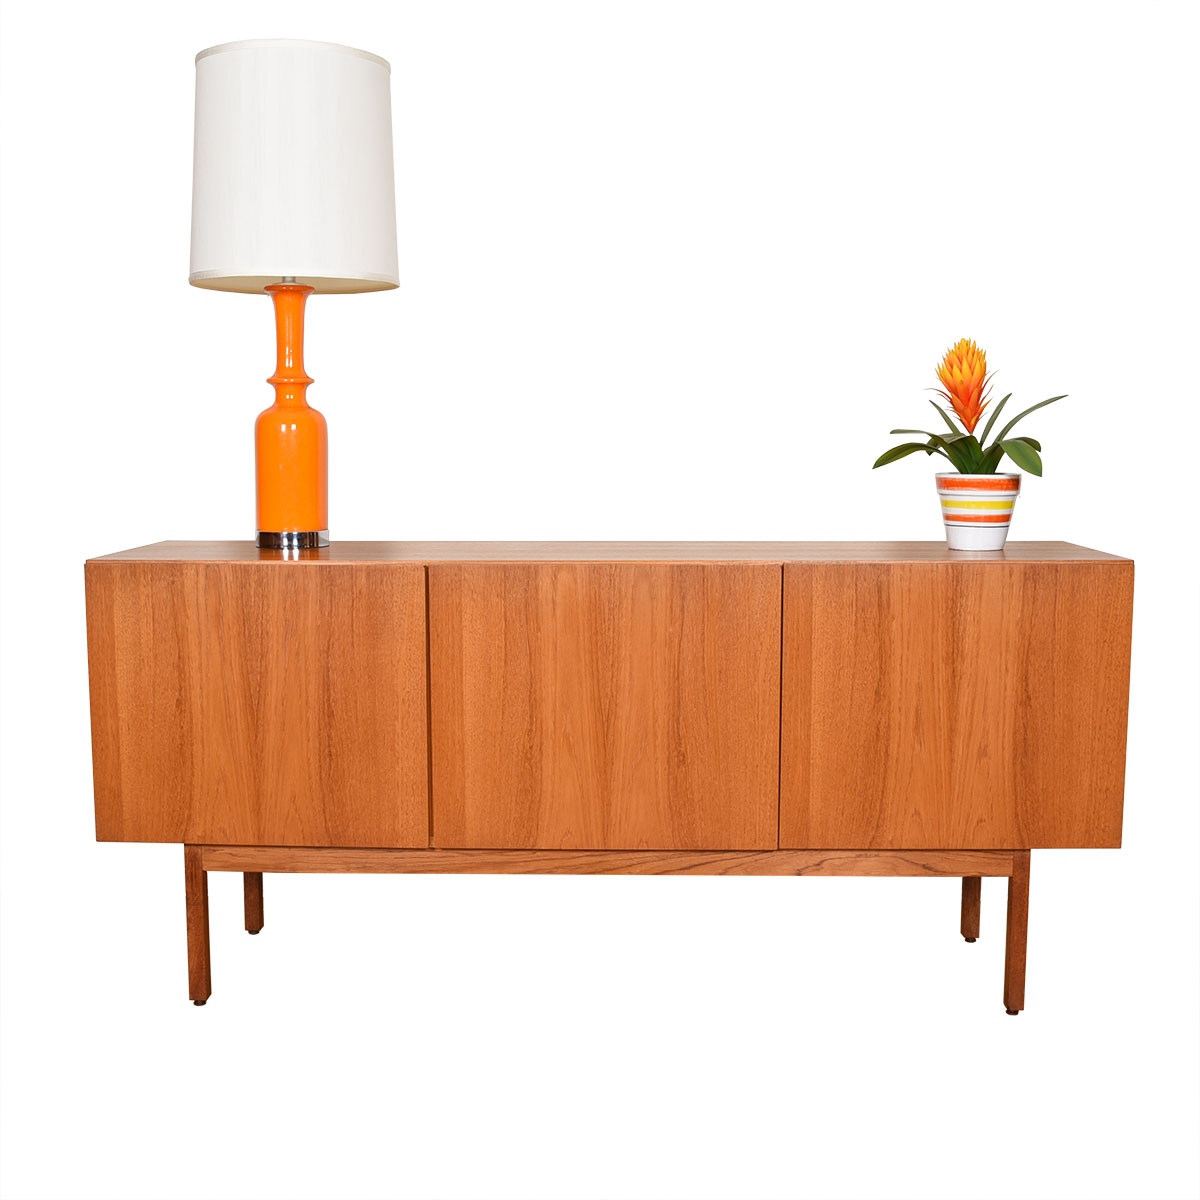 Danish Modern Teak 3 Door Sideboard / Room Divider